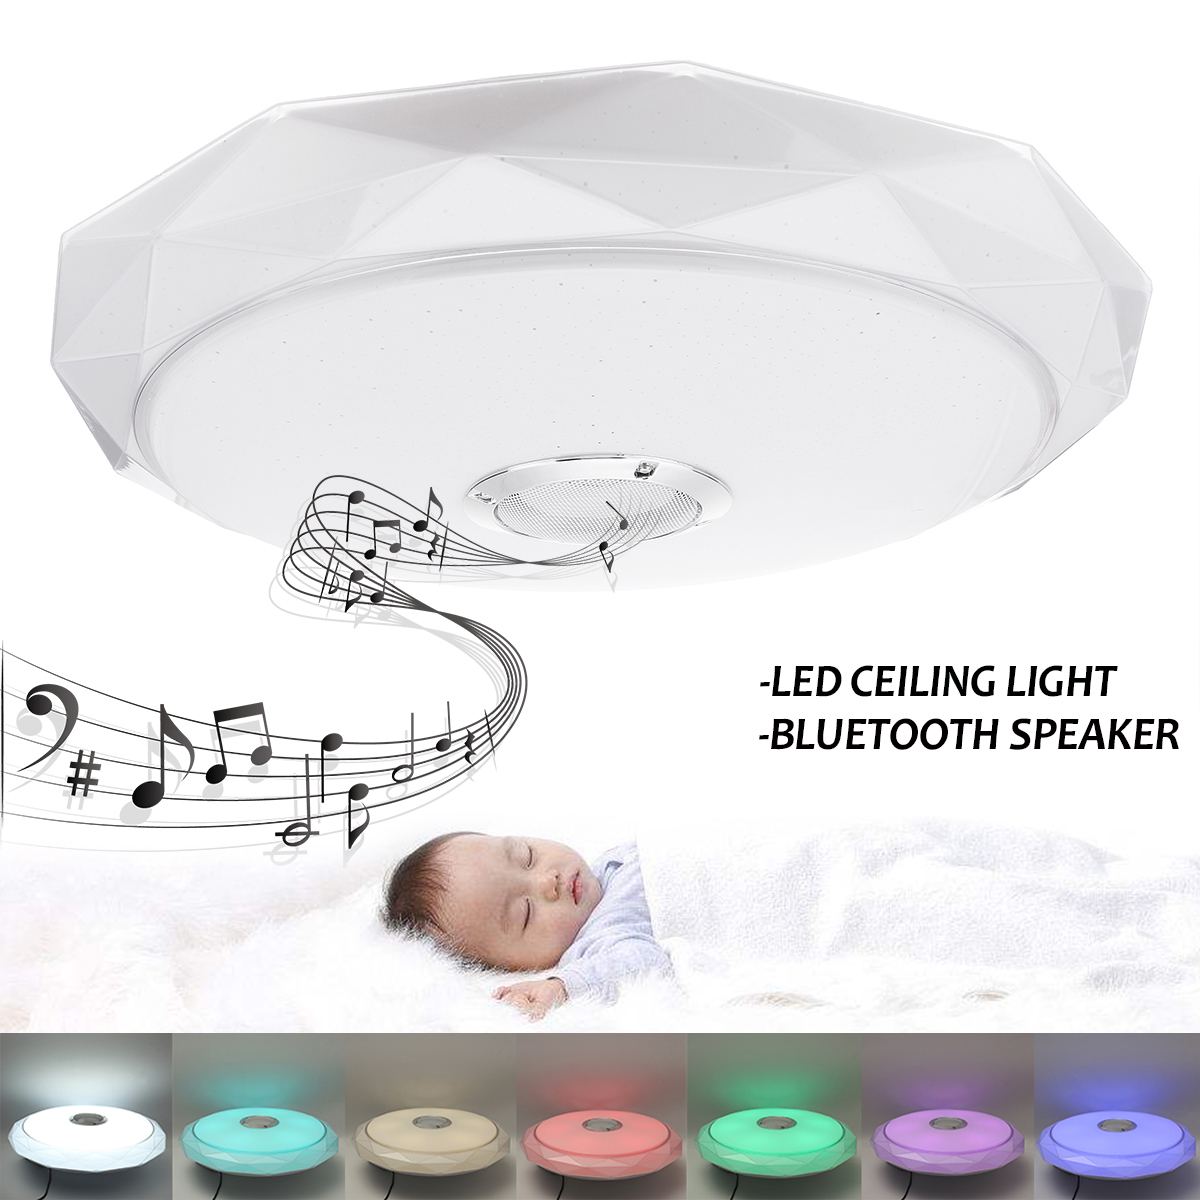 Bluetooth Speaker Ceiling Light Smart Remote Control RGB LED Ceiling Music Lamp Dimmable Living Room Lighting Fixture Bedroom